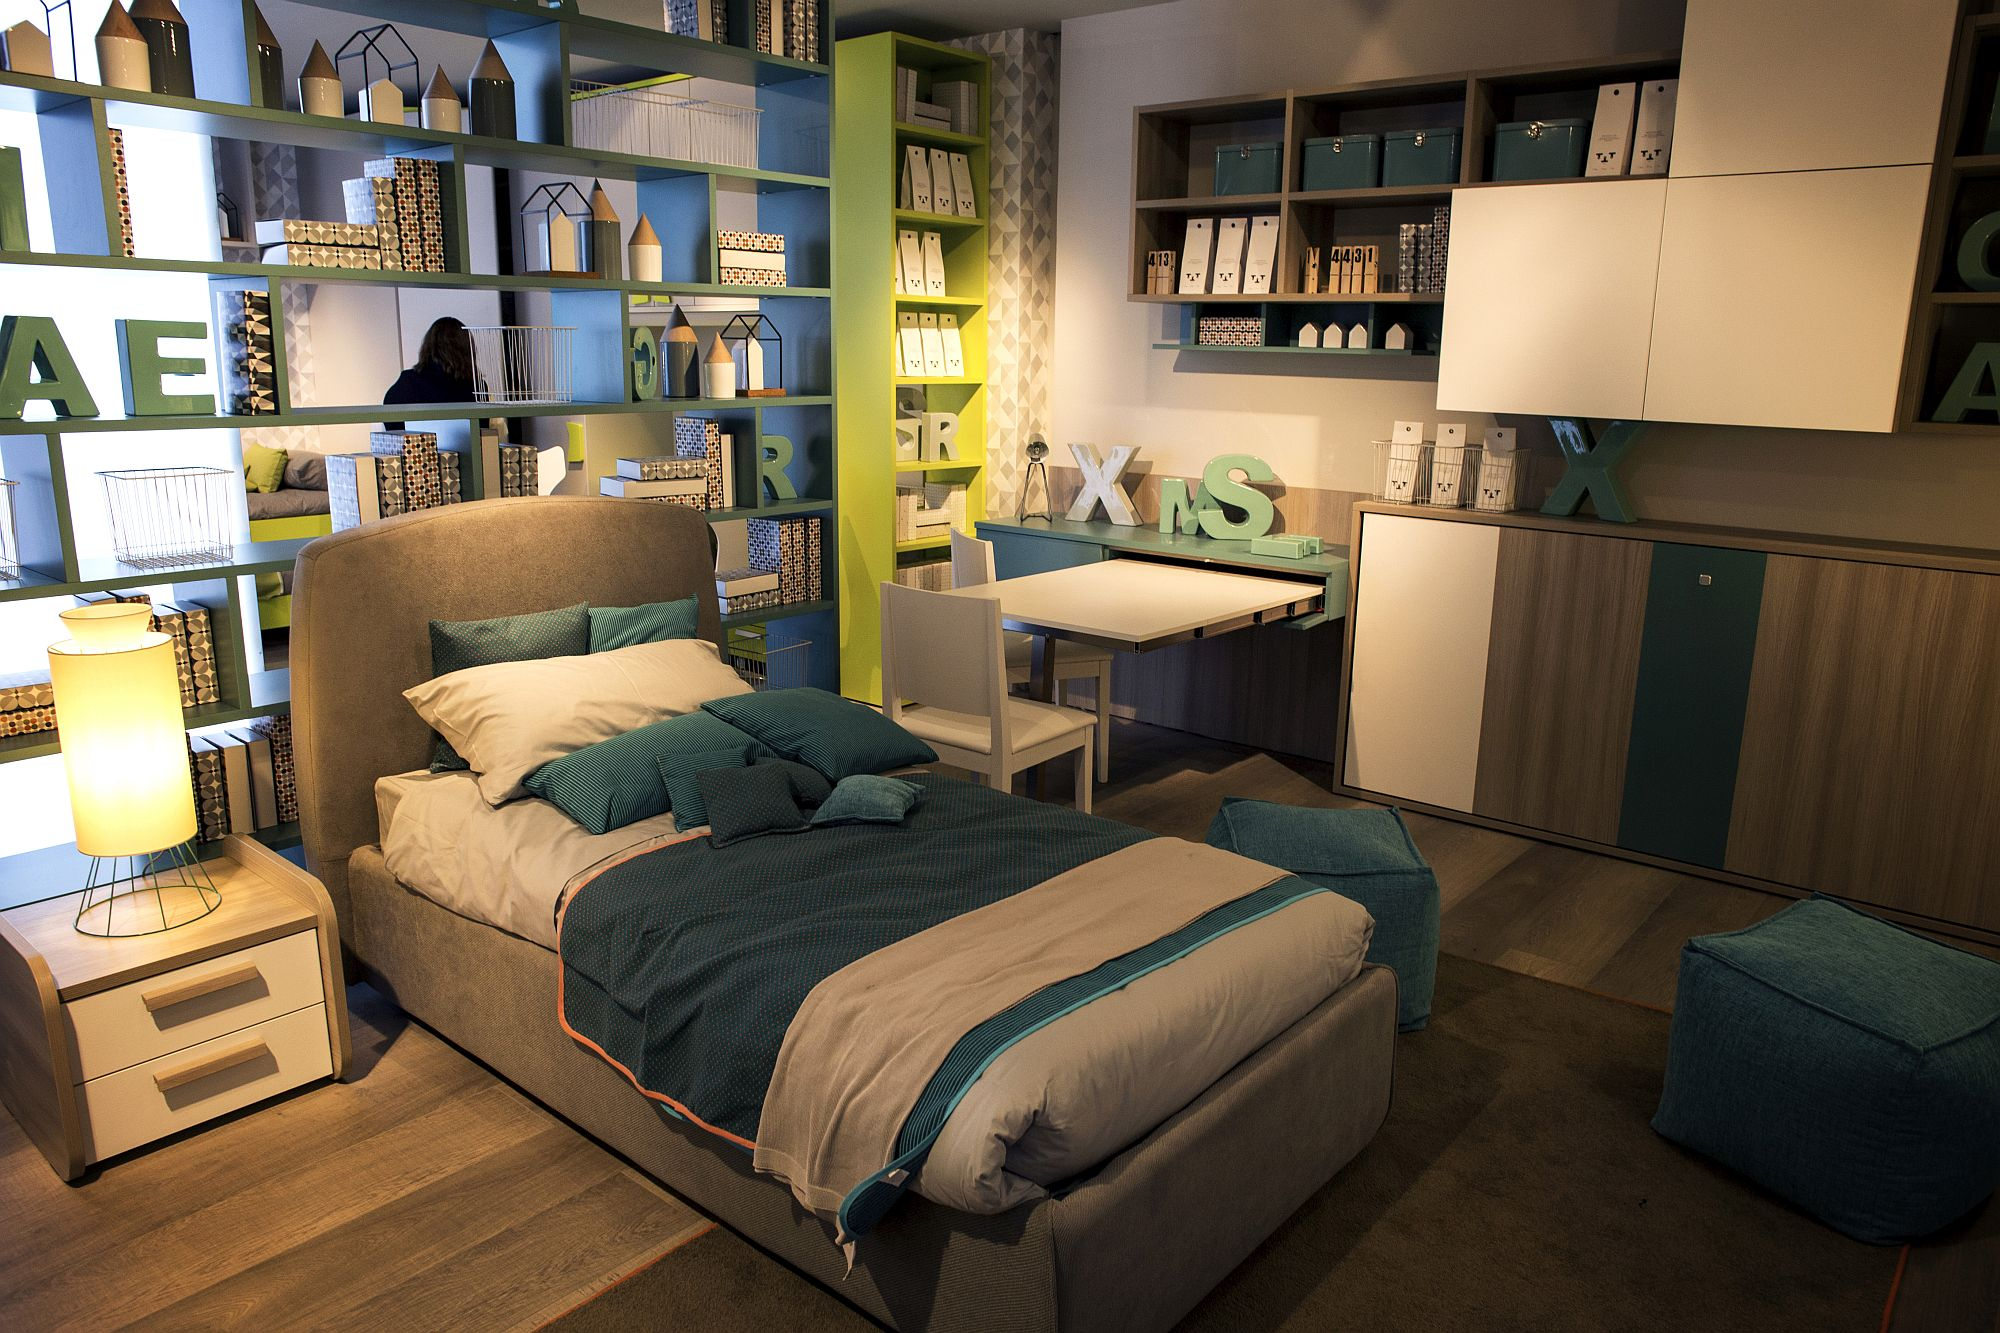 7 Inspiring Kid Room Color Options For Your Little Ones: 15 Ways To Maximize Corner Space In Kids' Bedrooms